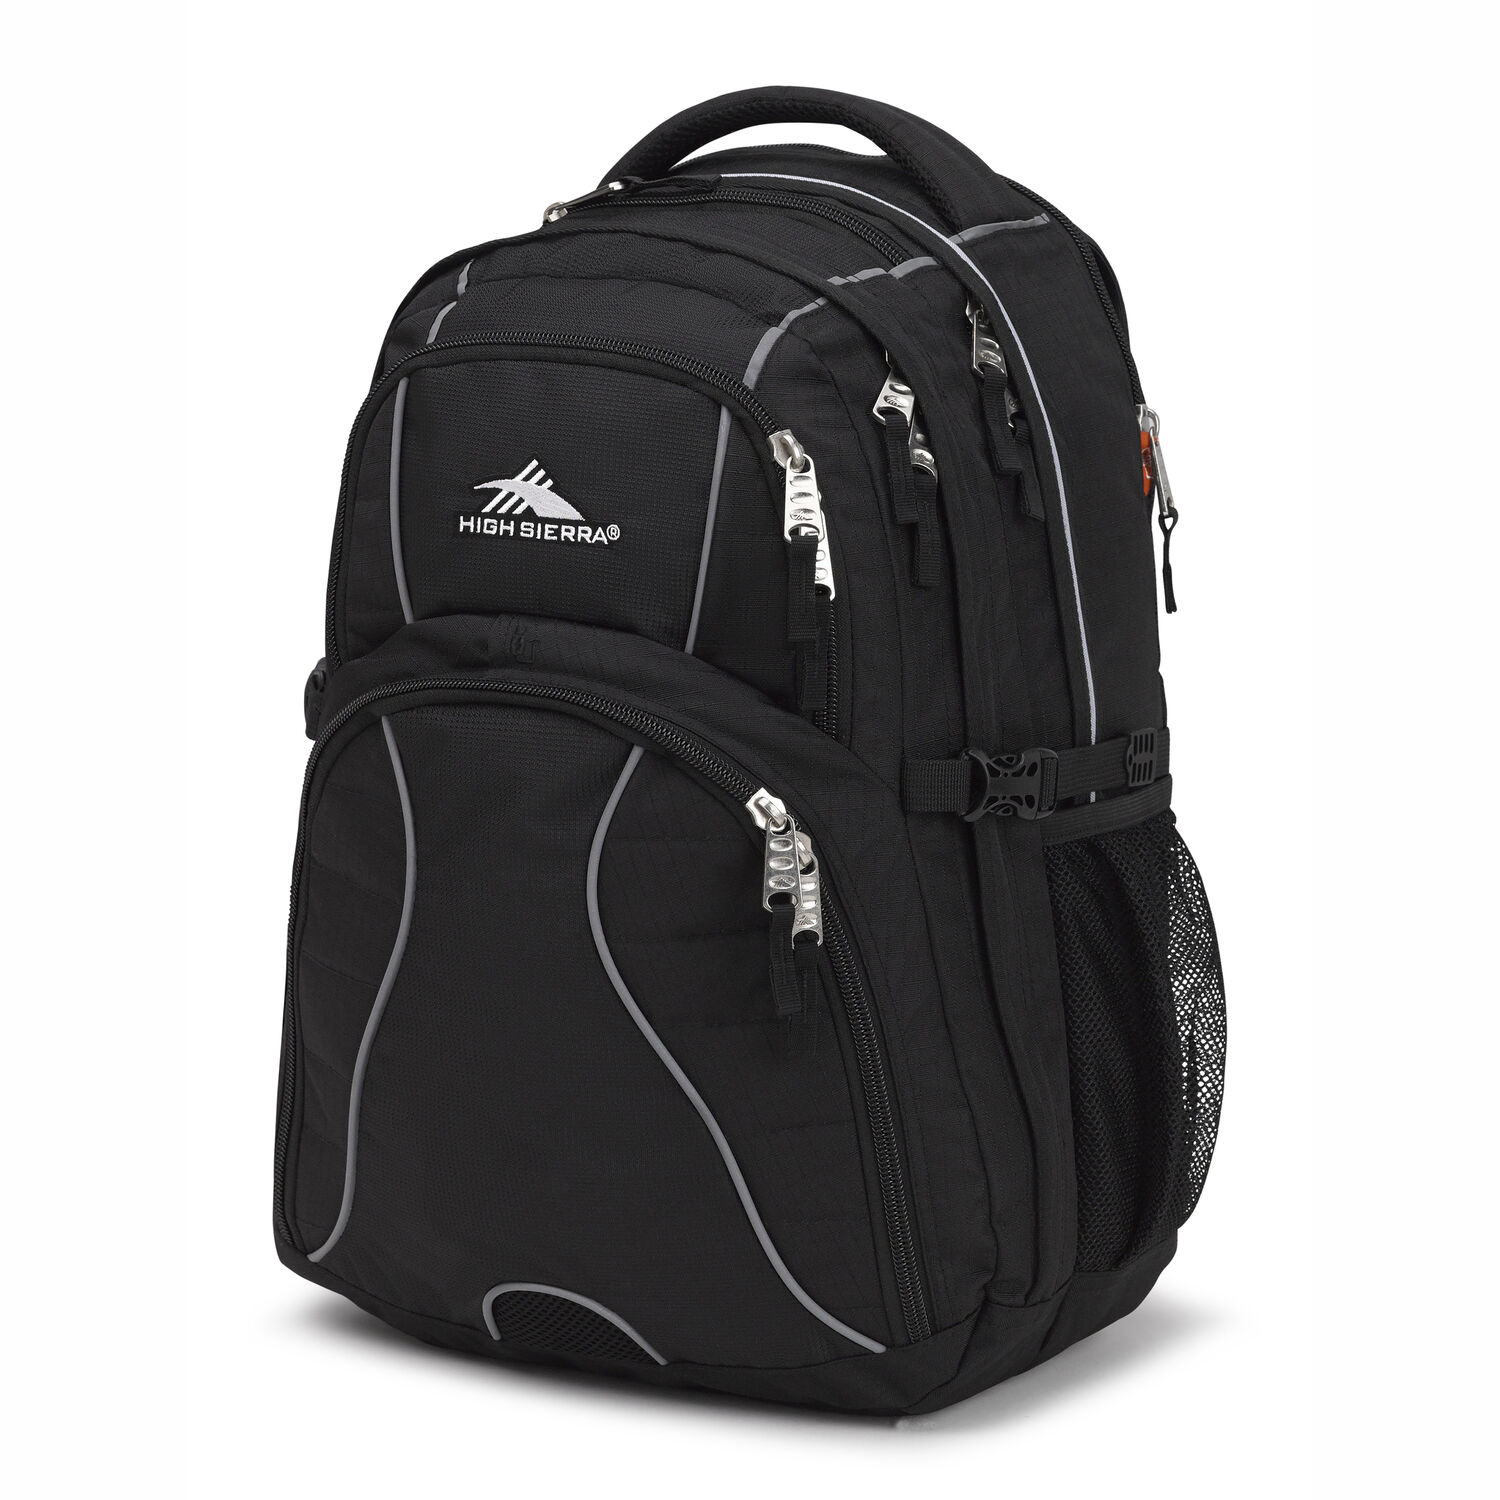 8cdc25ecae6 High Sierra Swerve Backpack in the color Black.